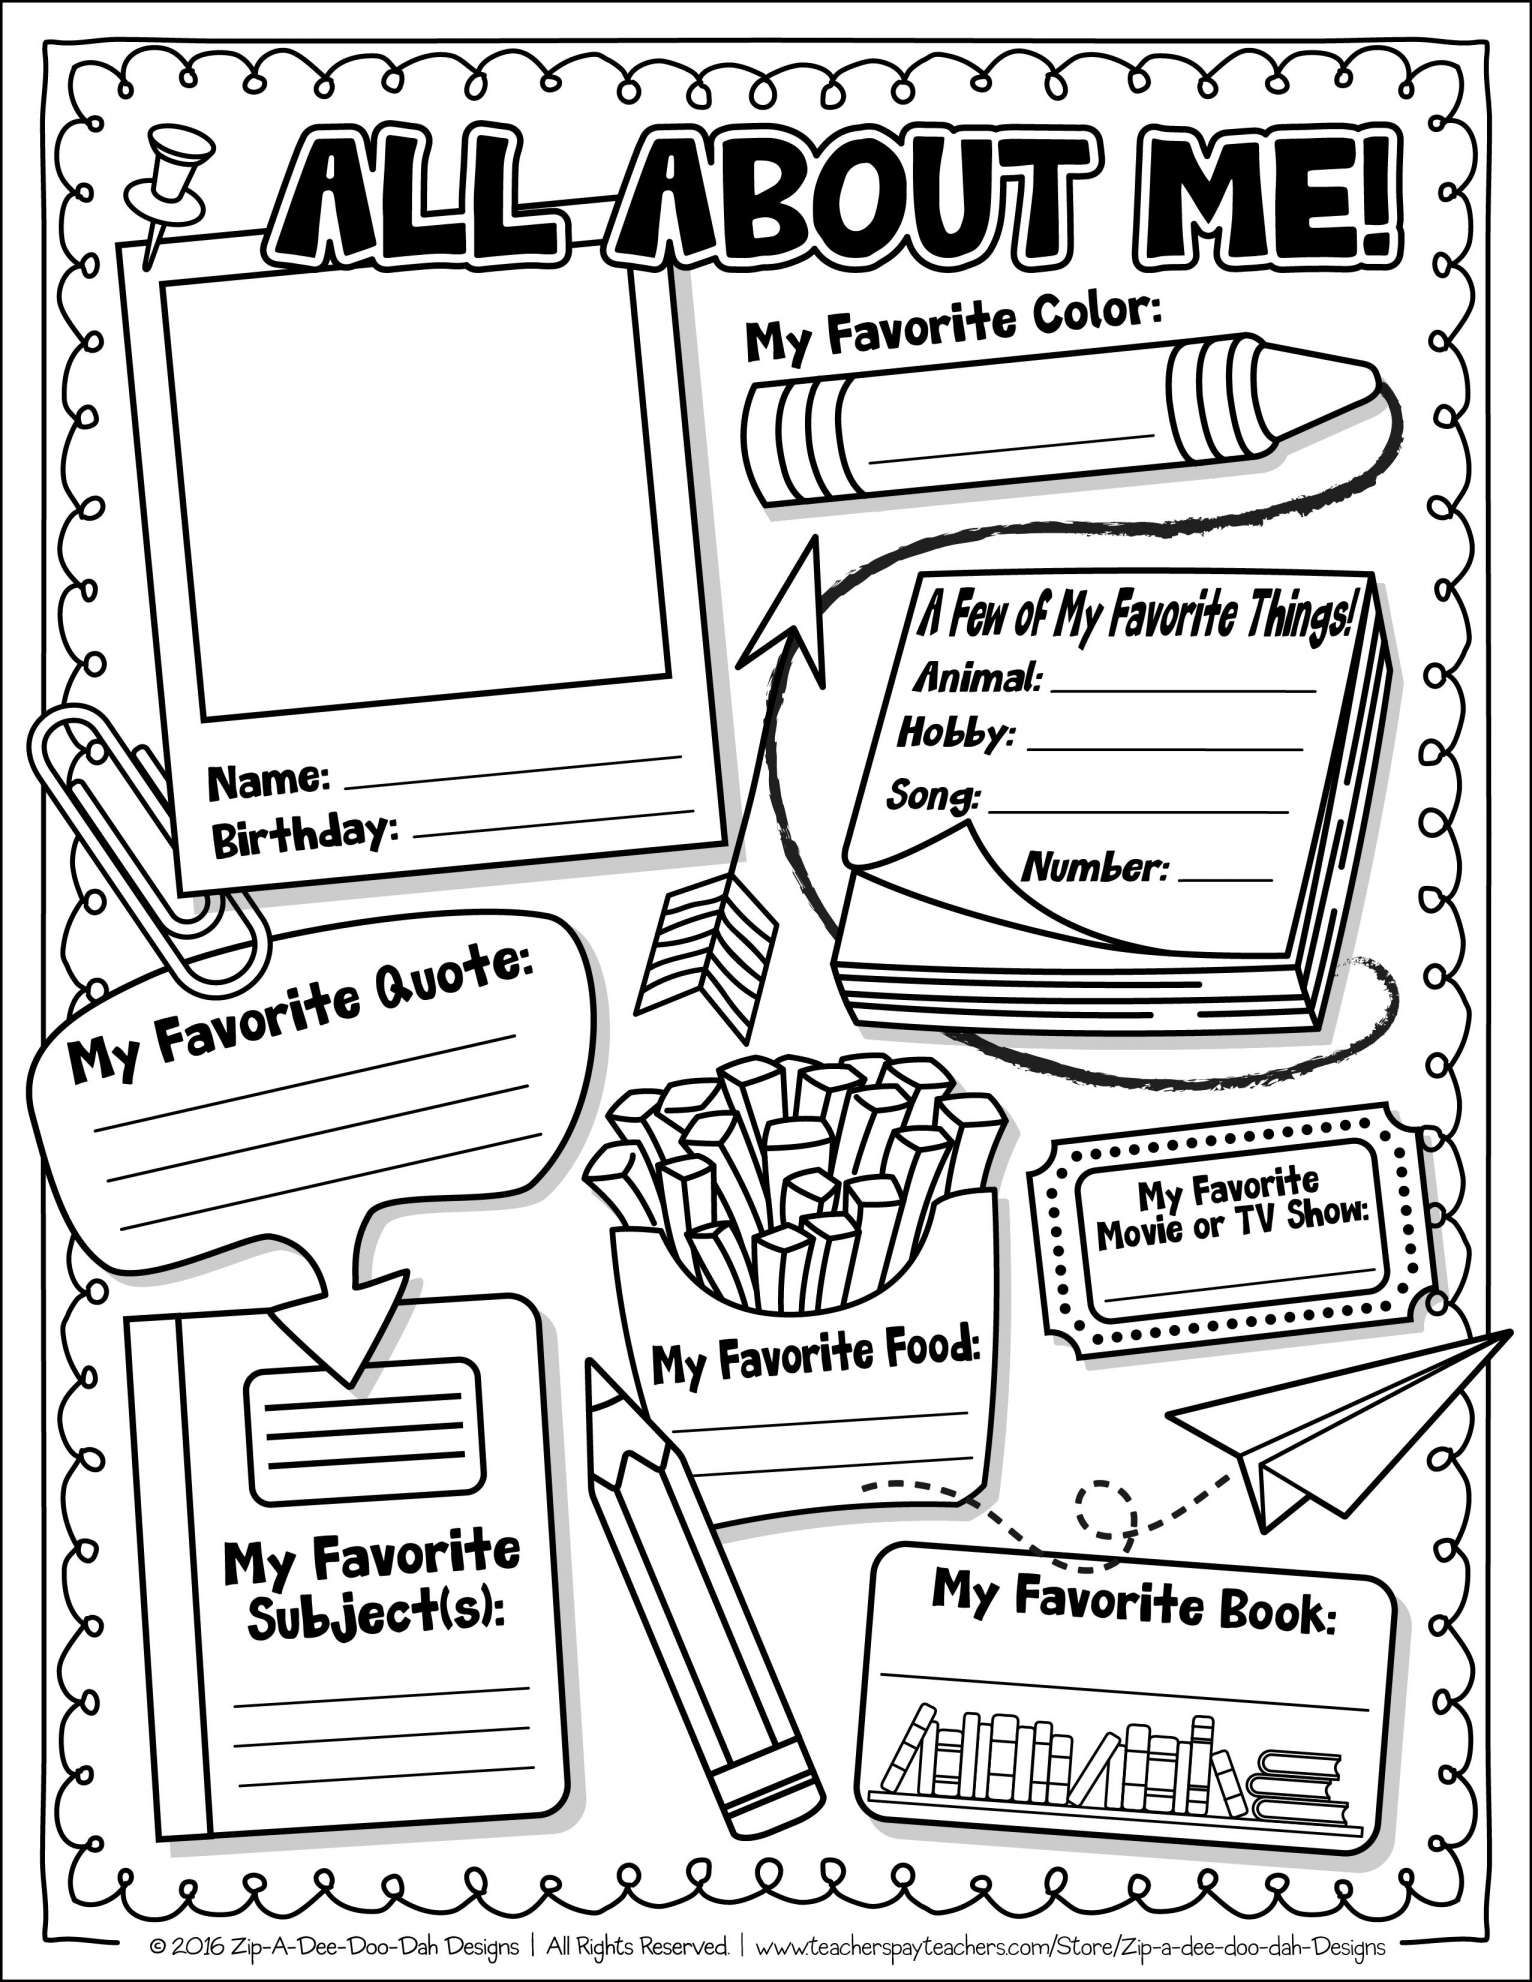 7 All About Me Worksheet 4th Grade Freeall About Me